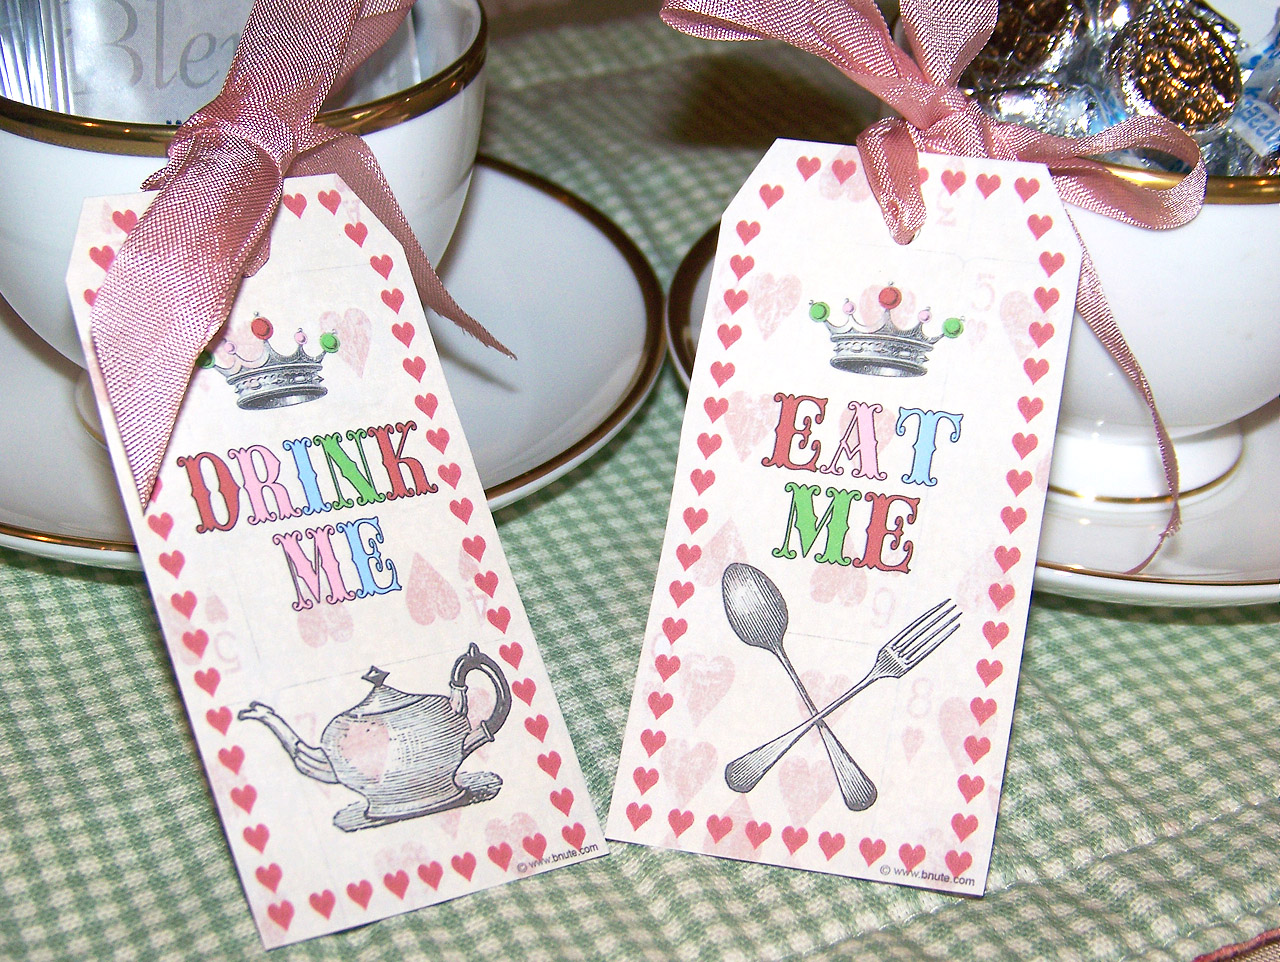 Mad hatter tea party quotes quotesgram - Mad hatter tea party decoration ideas ...